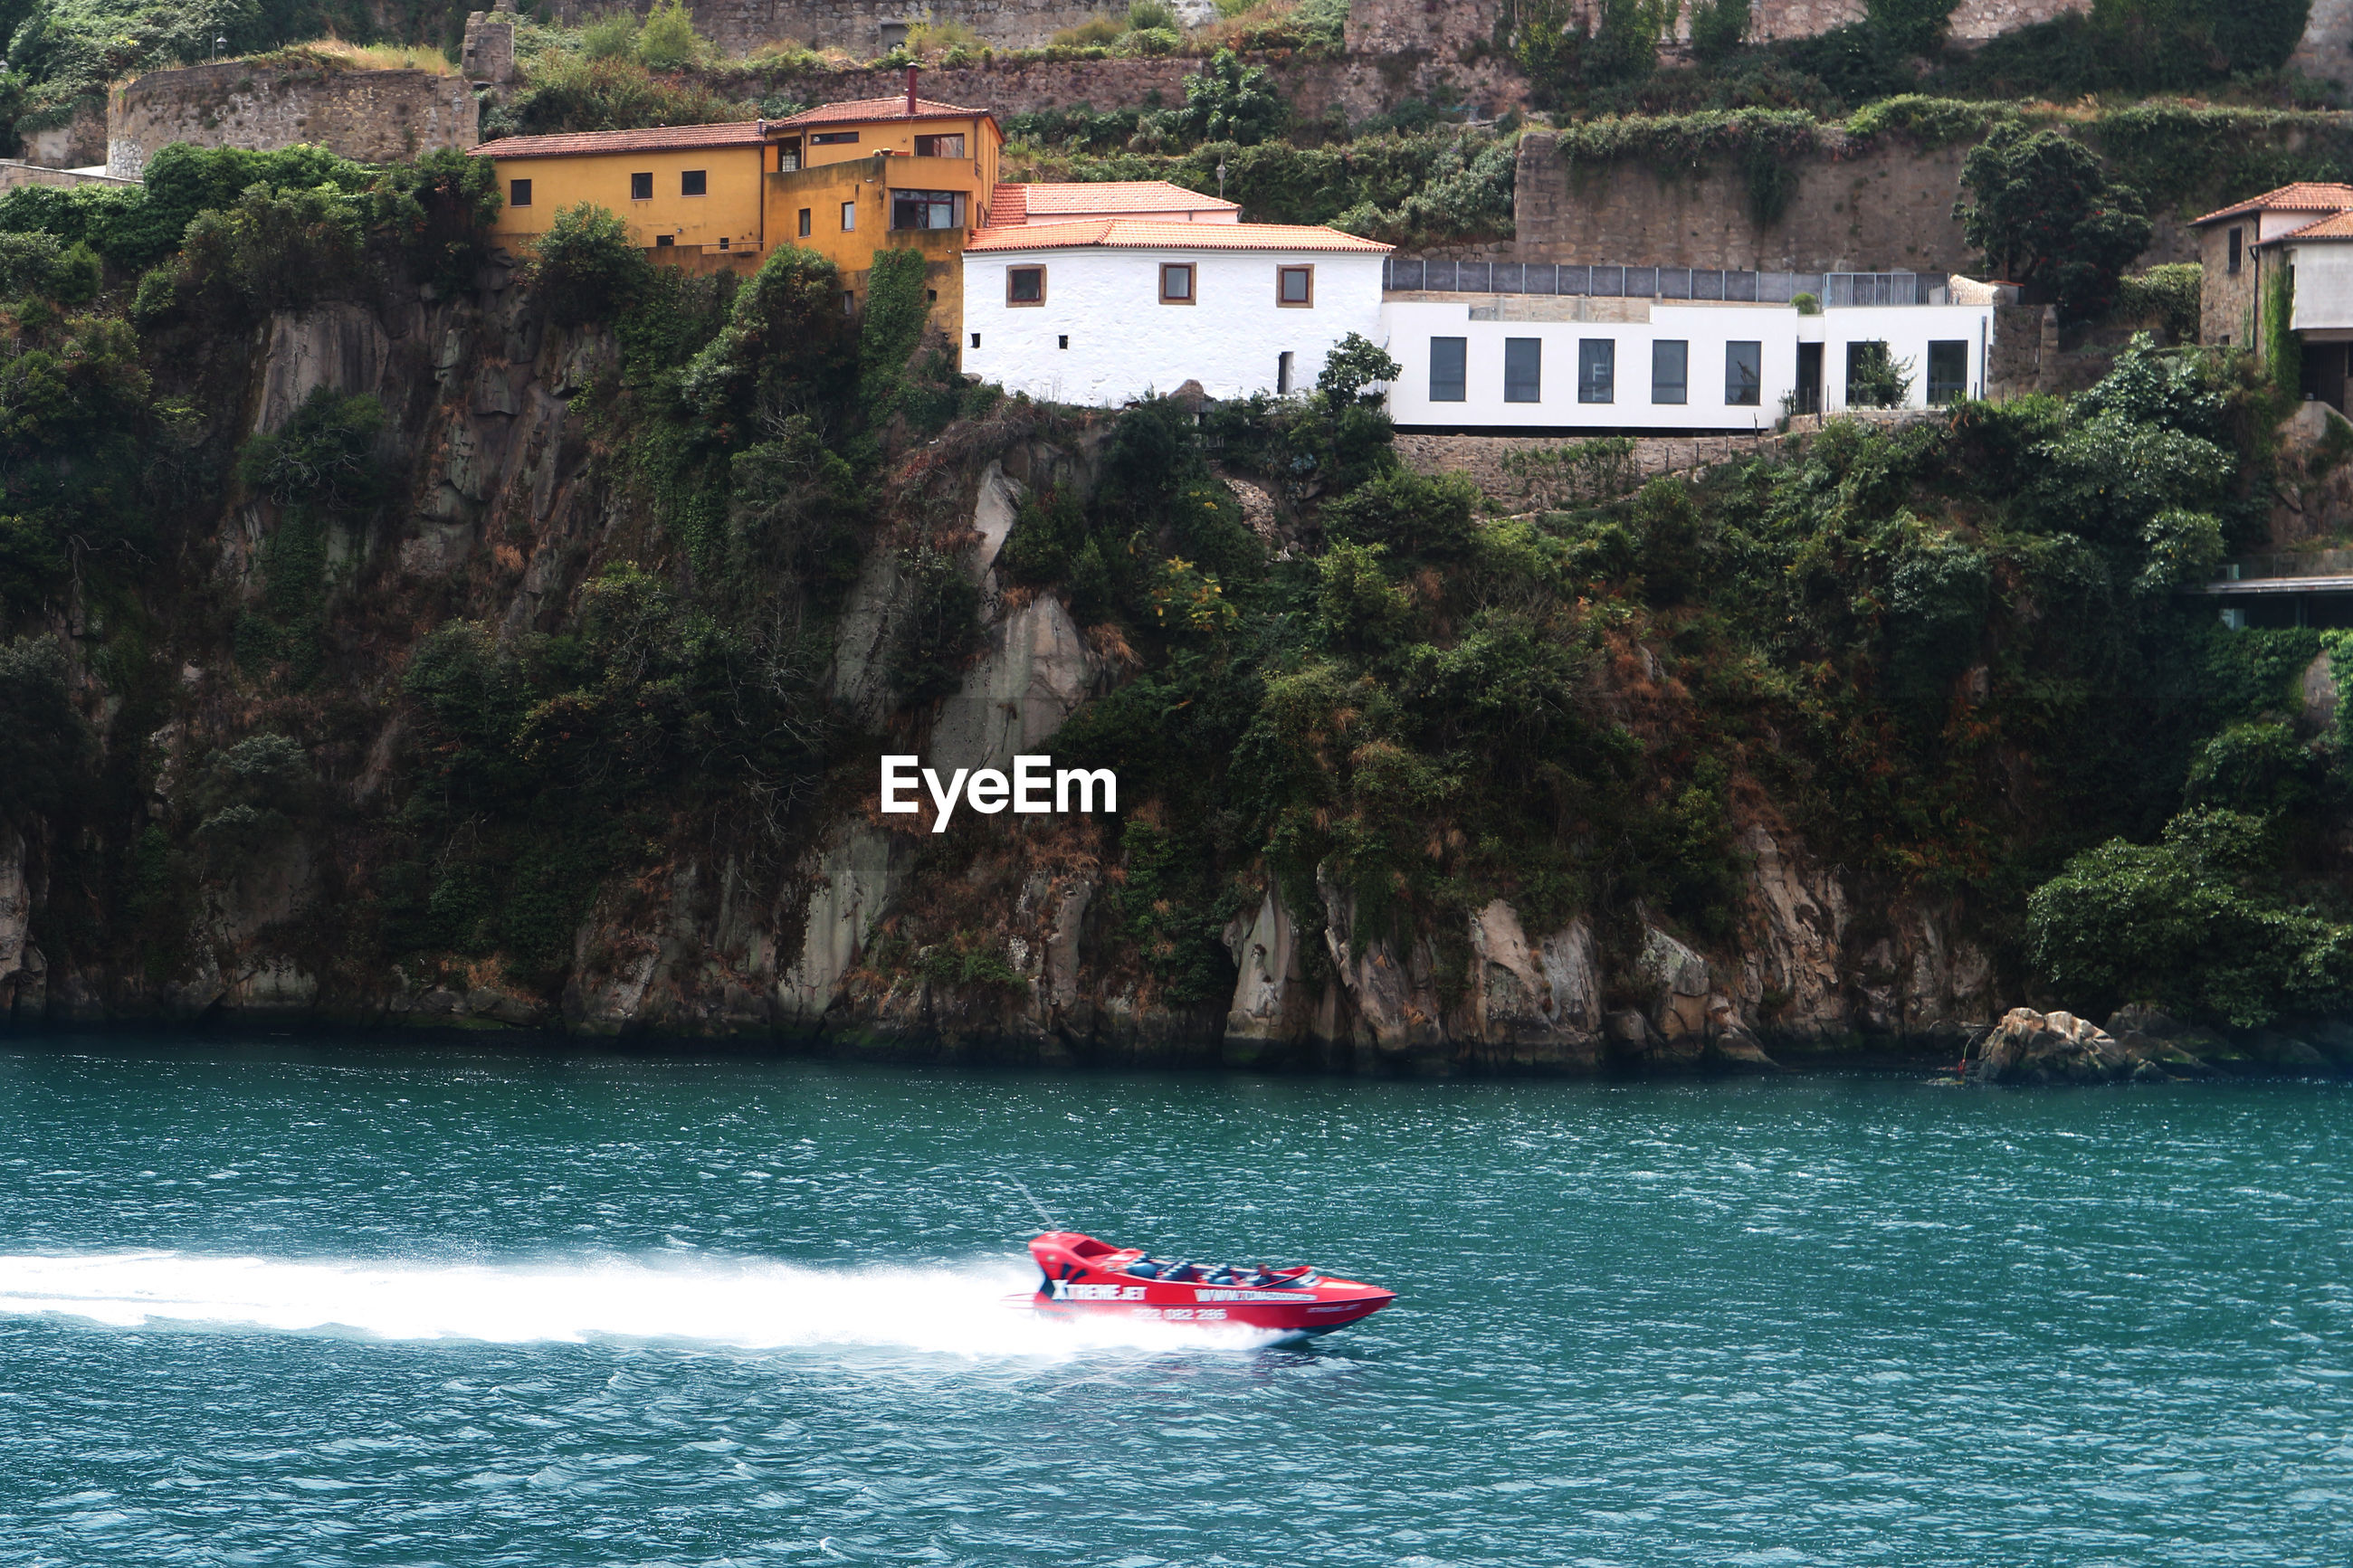 nautical vessel, transportation, water, boat, tree, day, mode of transport, nature, river, real people, waterfront, building exterior, outdoors, men, architecture, inflatable raft, cliff, built structure, beauty in nature, sailing, scenics, jet boat, people